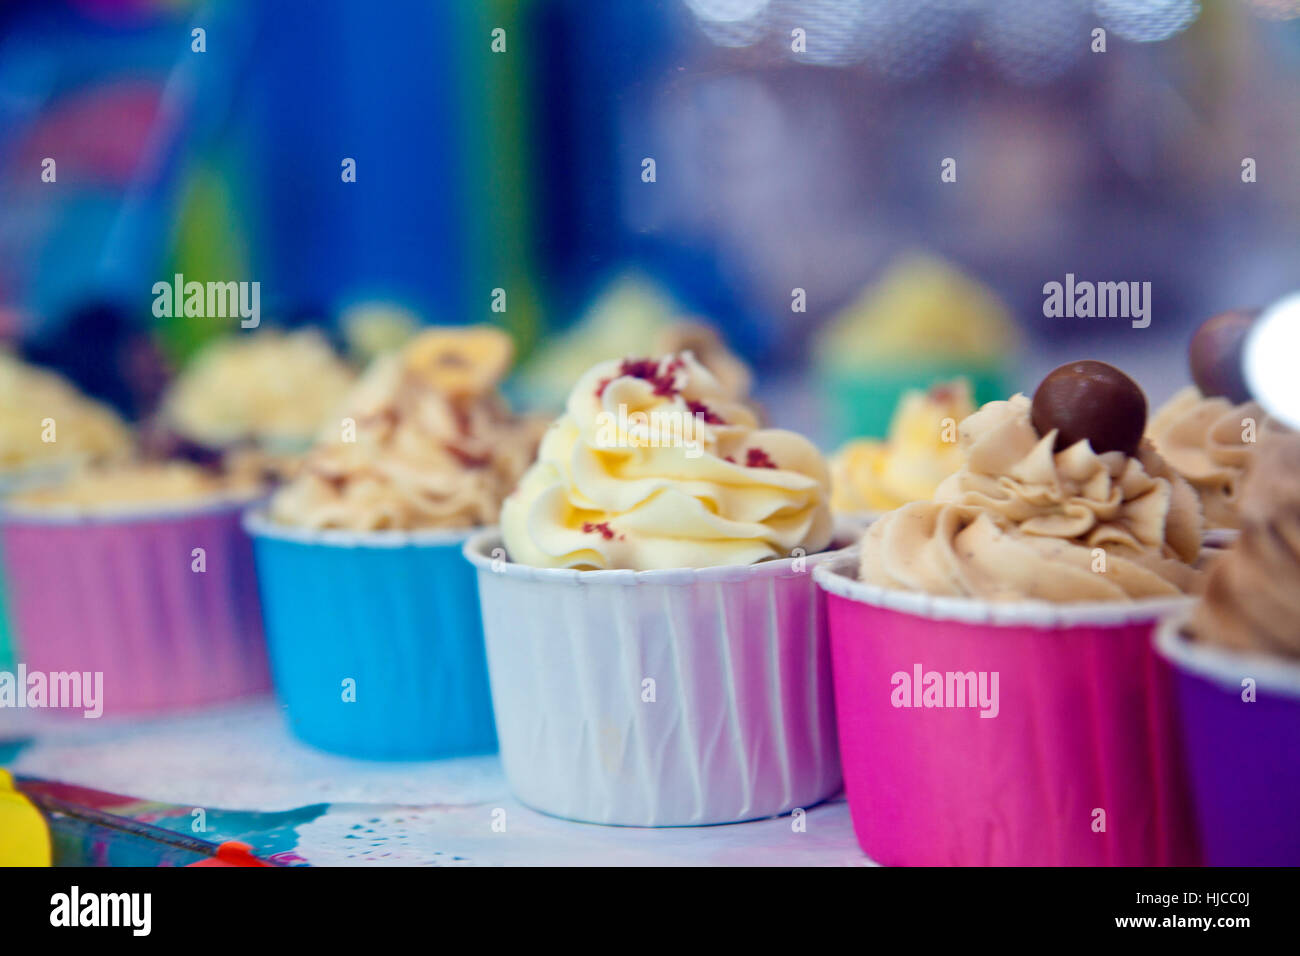 Row of colourful cupcakes with icing swirls in shop window - Stock Image